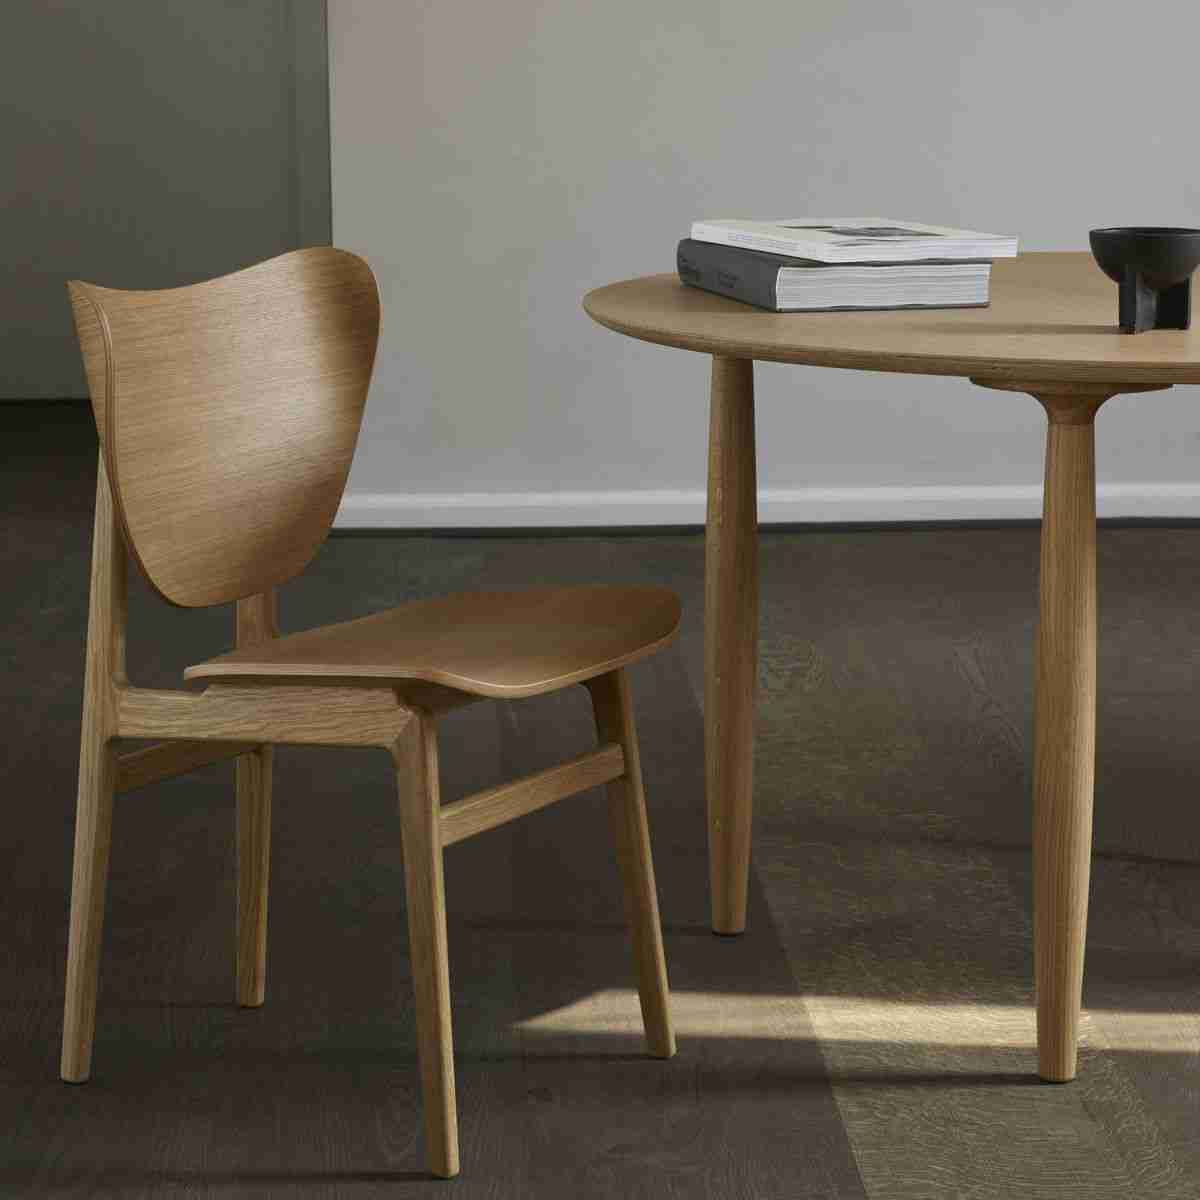 NY11 Dinning chair and Oku Dinning table